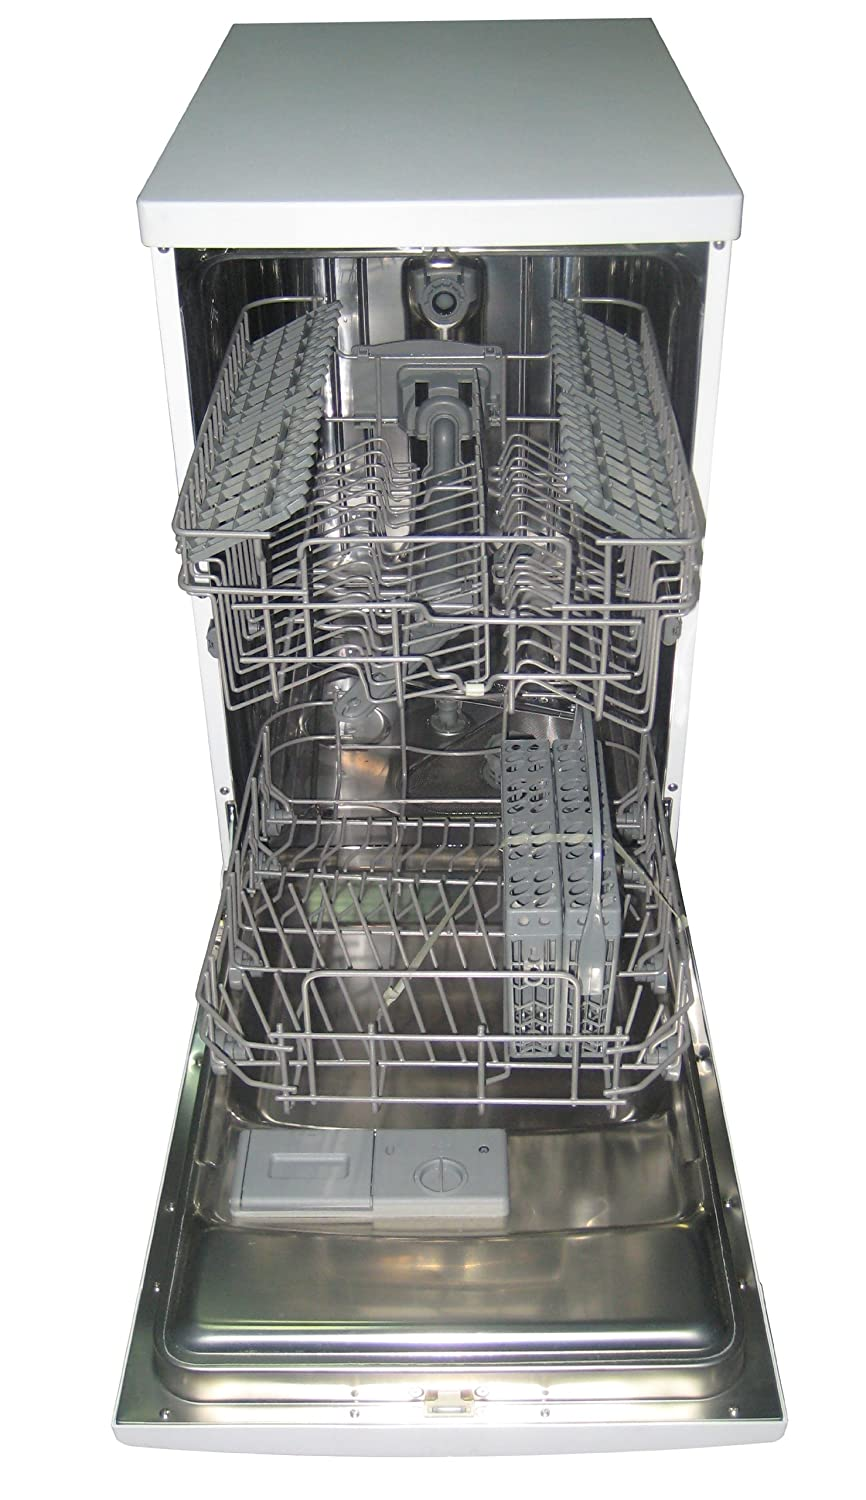 Amazon.com: SPT SD 9241W Energy Star Portable Dishwasher, 18 Inch, White:  Appliances